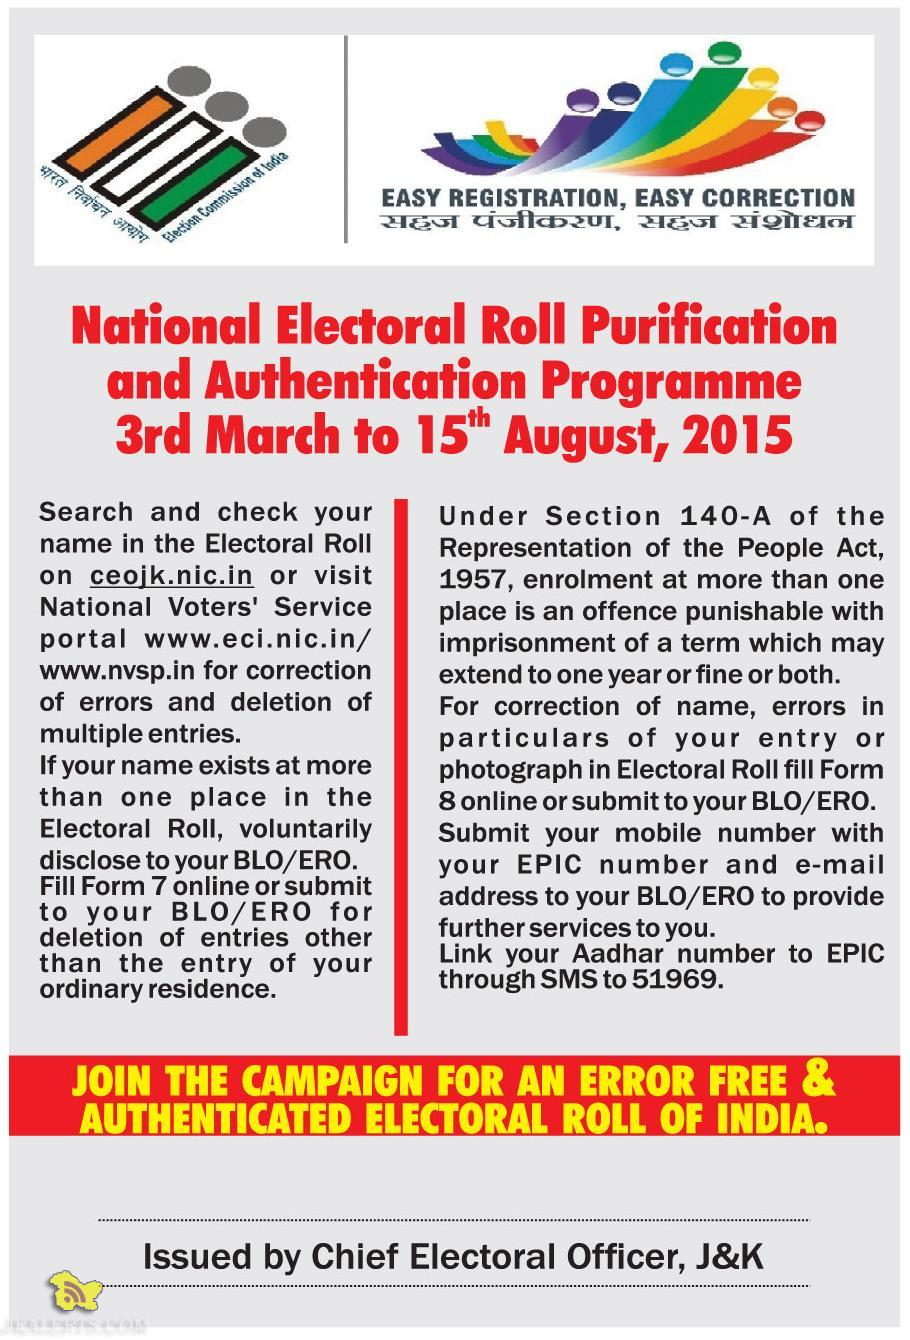 National Electoral Roll Purification and Authentication Programme 3rd March to 15th August, 2015